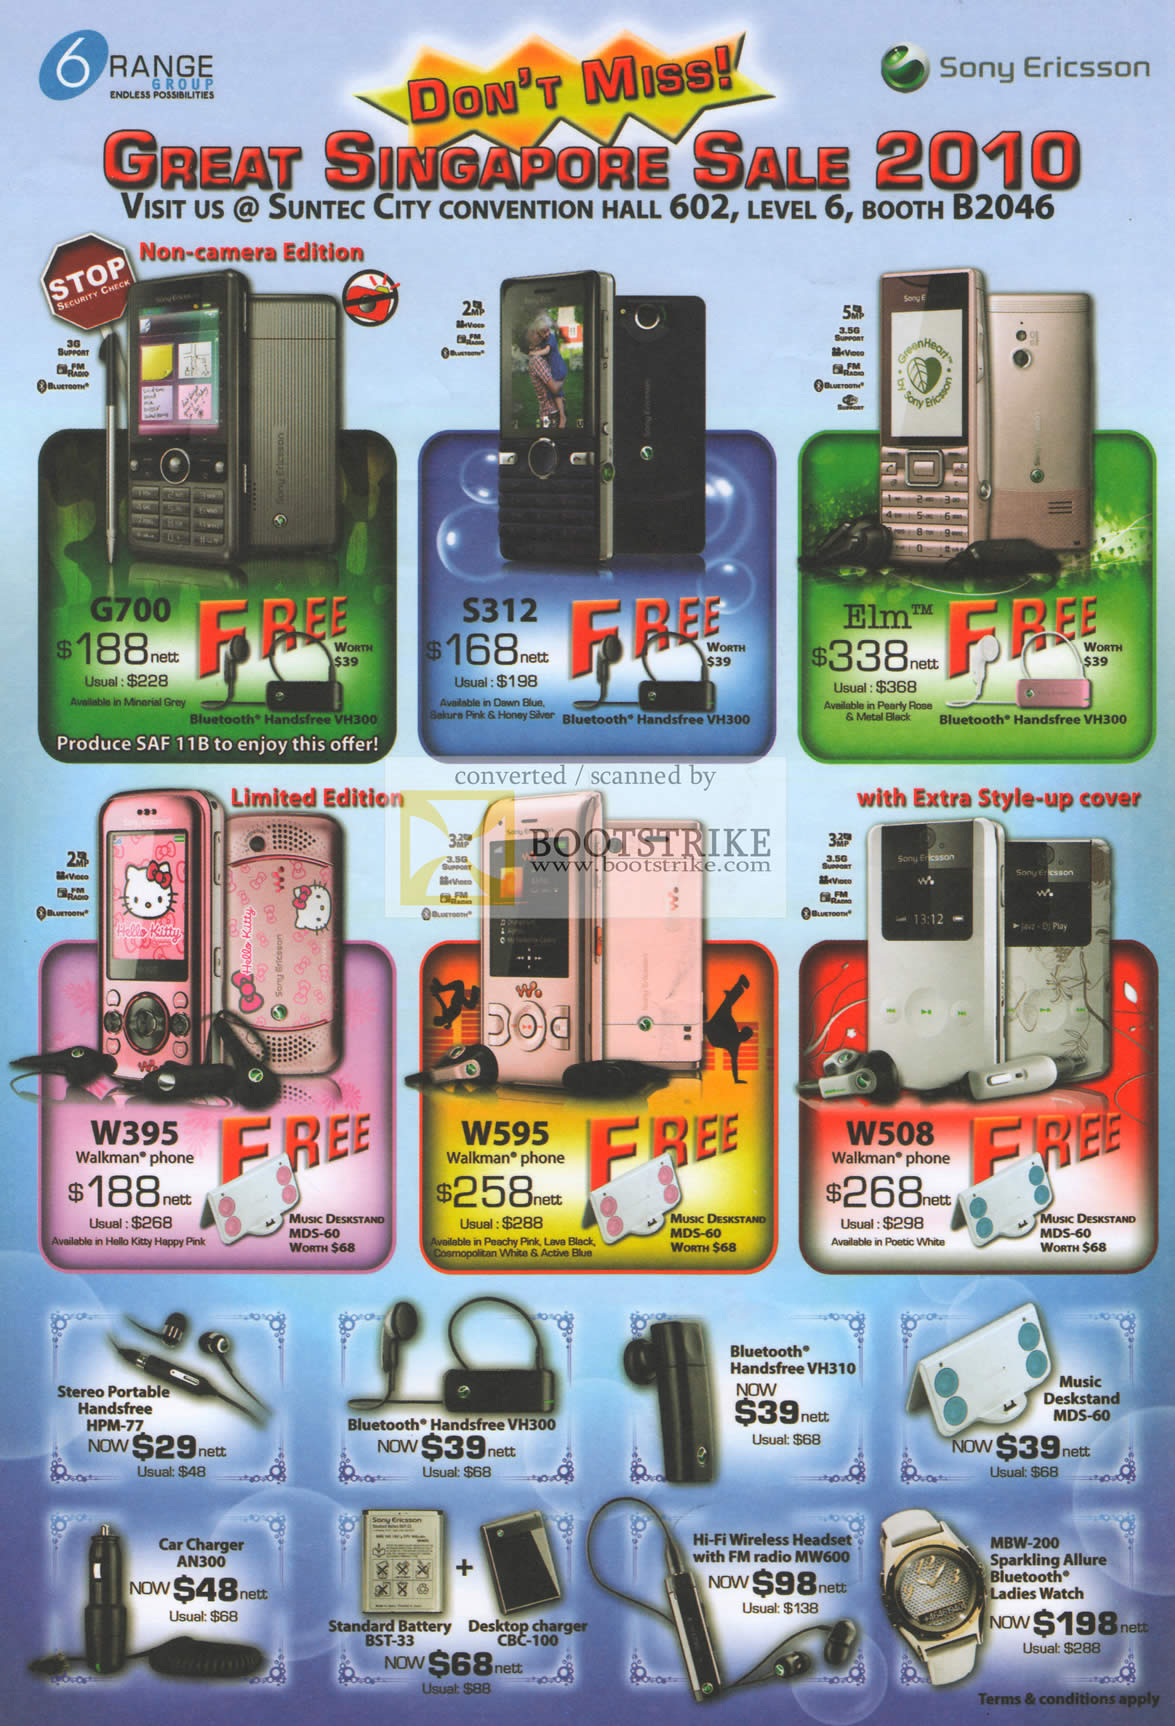 6range Sony Ericsson G700 S312 Elm W395 W595 W508 Bluetooth Handsfree Charger Pc Show 2010 Price List Brochure Flyer Image